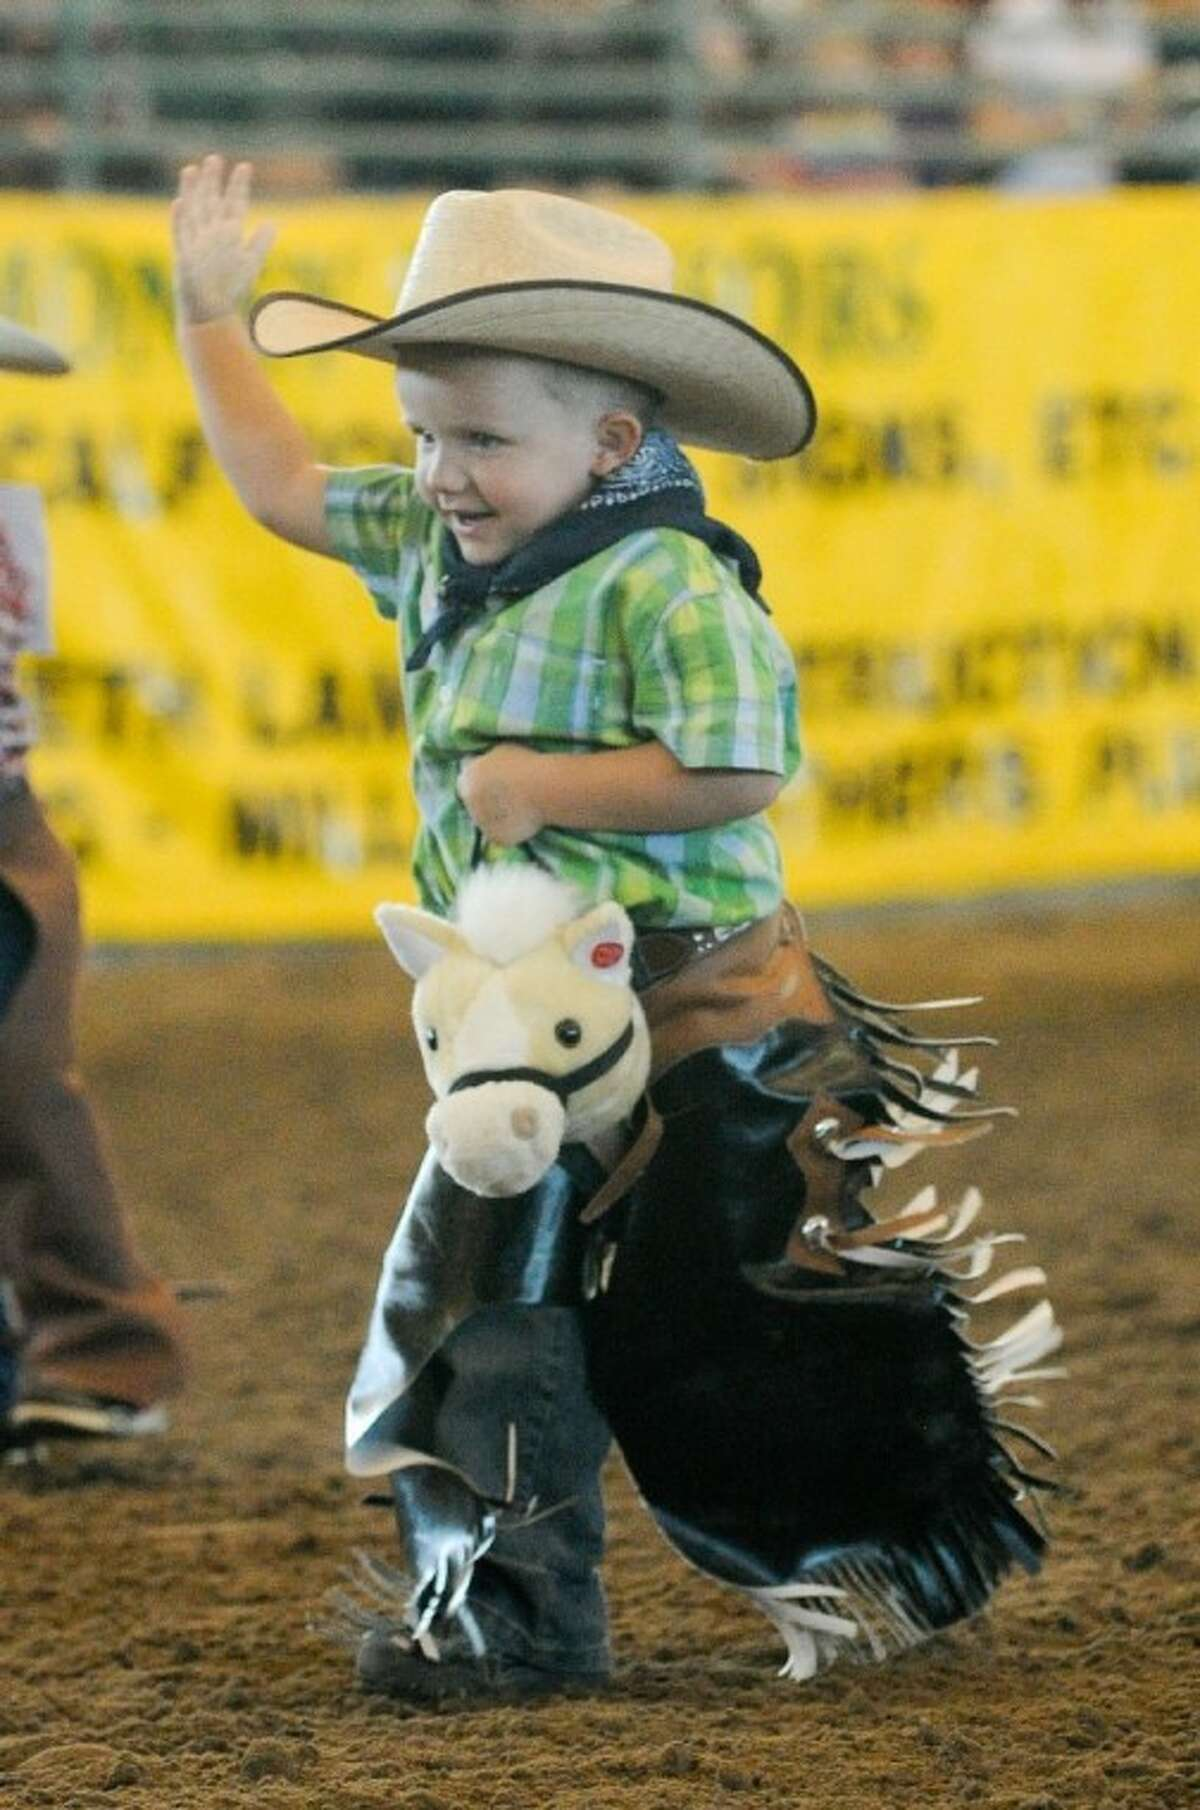 A youngster enjoys the stick horse race at the rodeo.